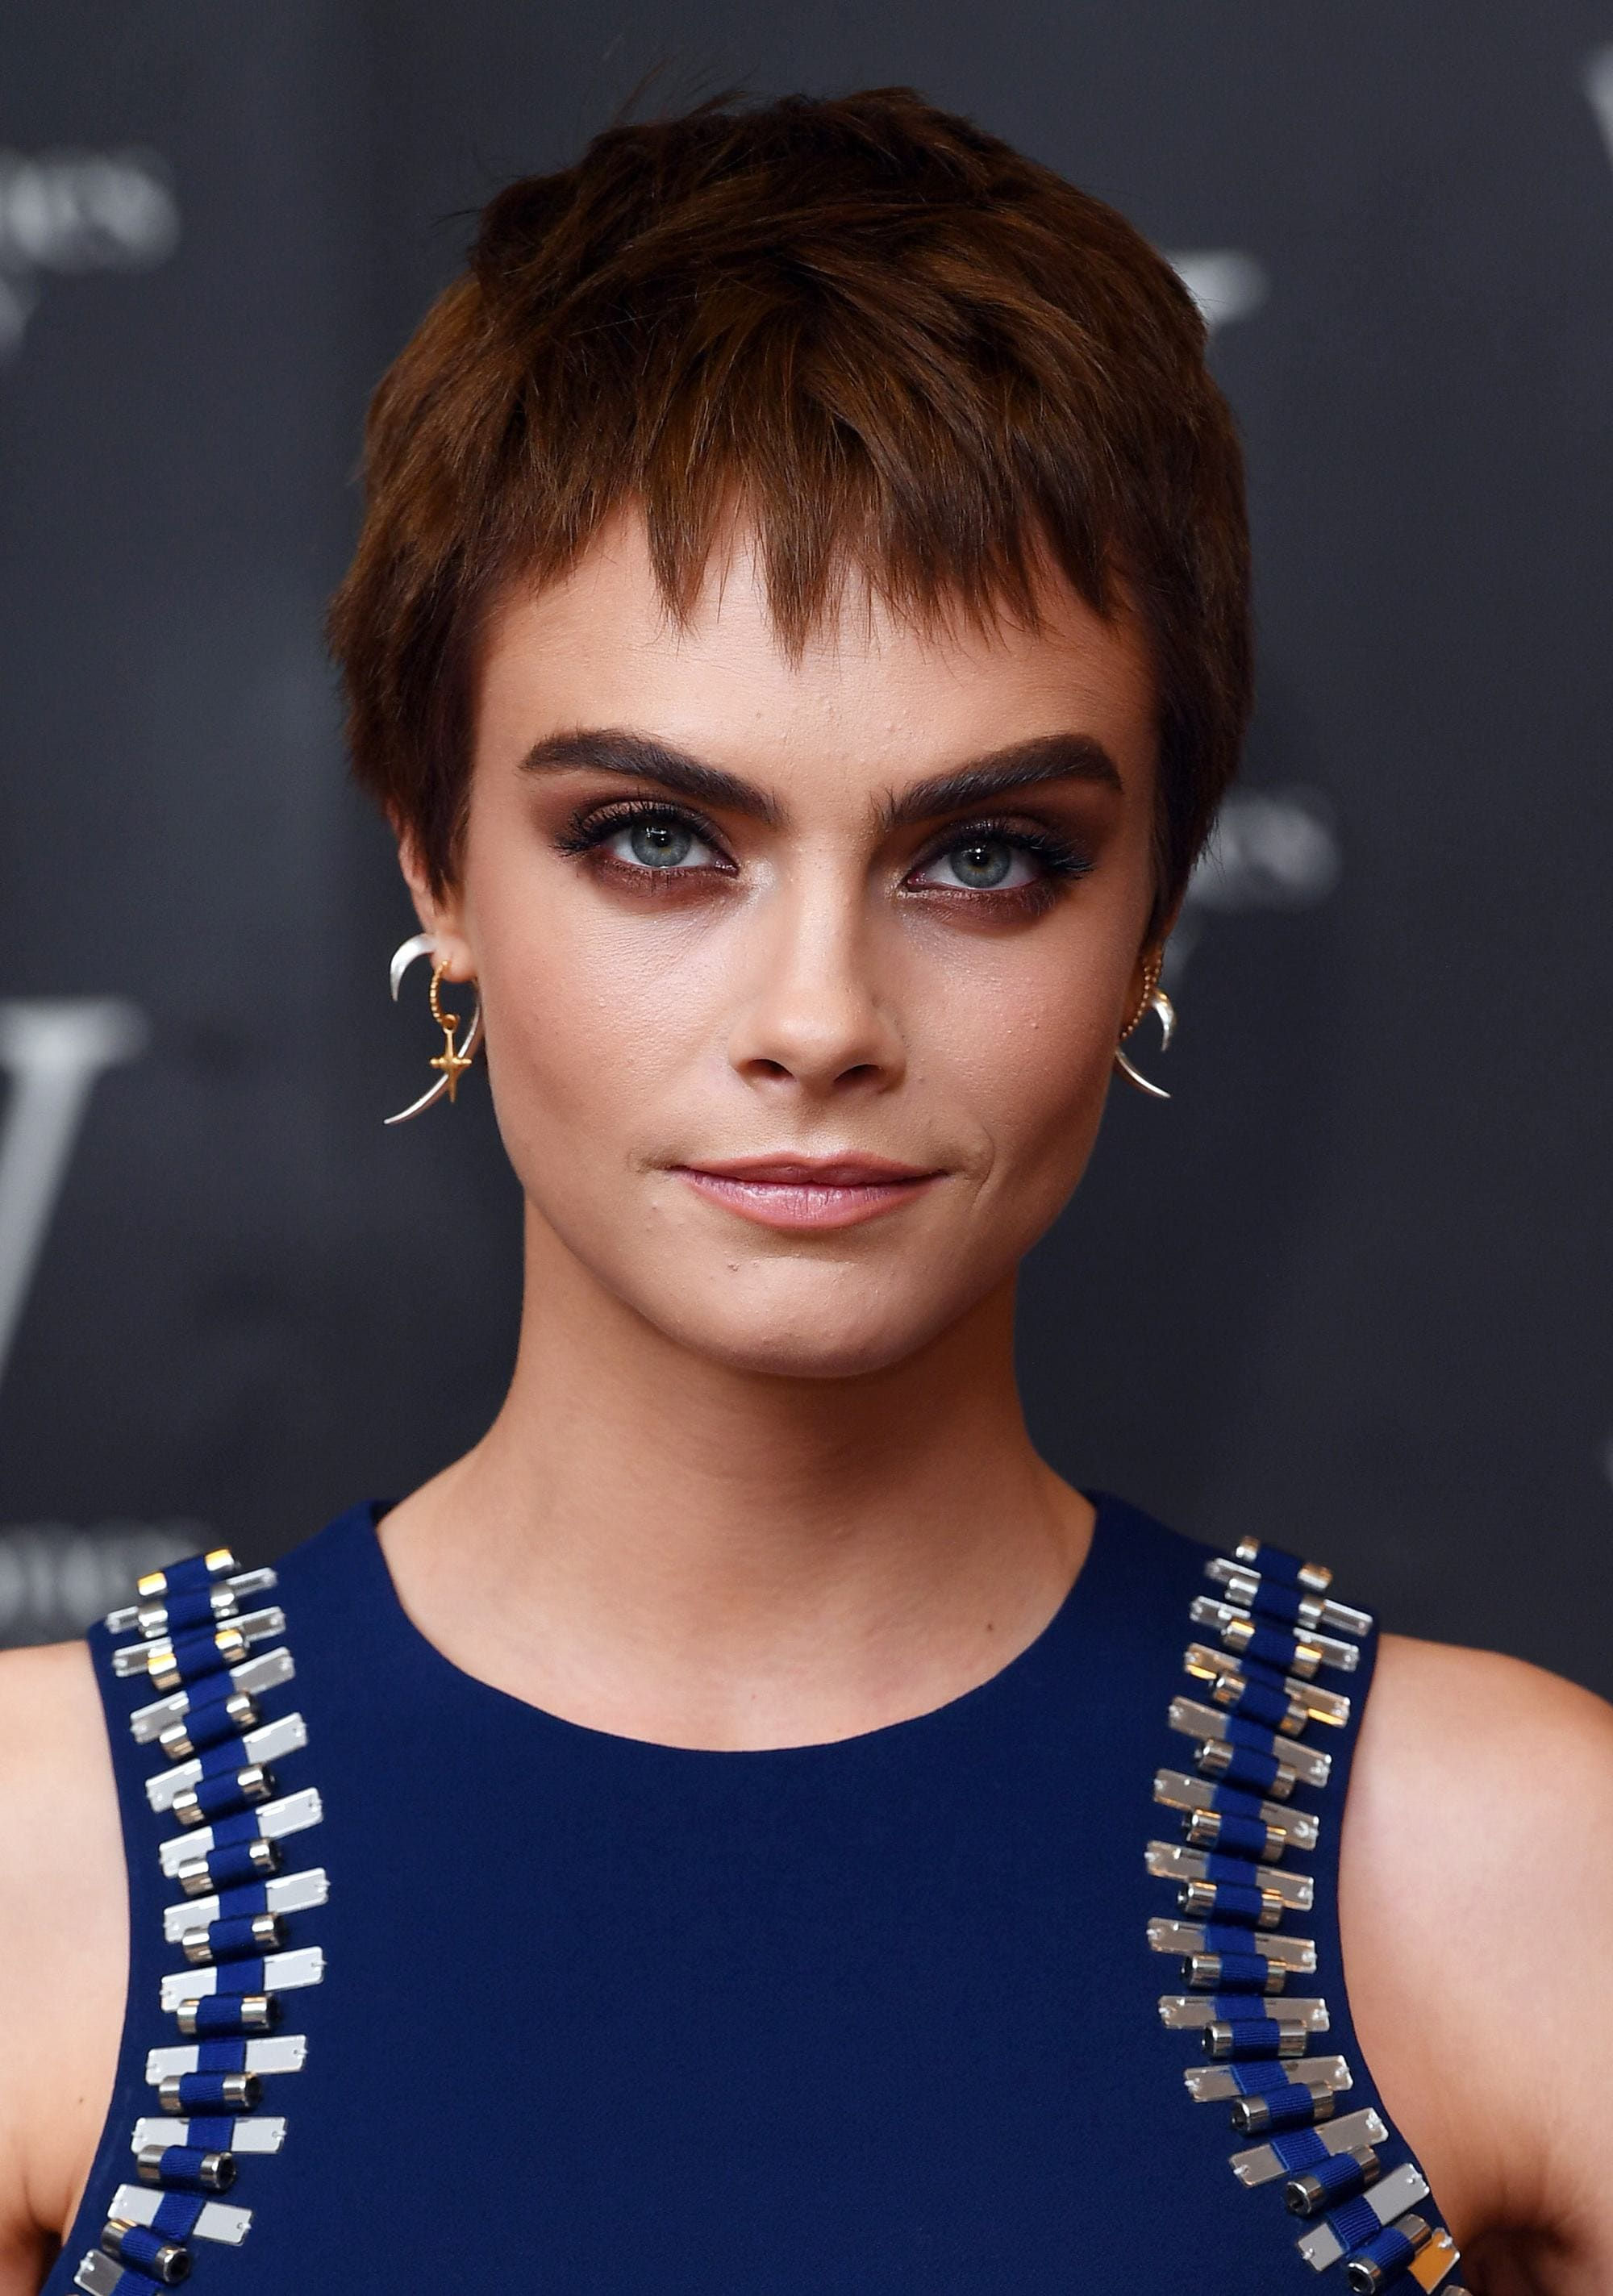 model cara delevingne at her debut book launch with chocolate brown pixie hair